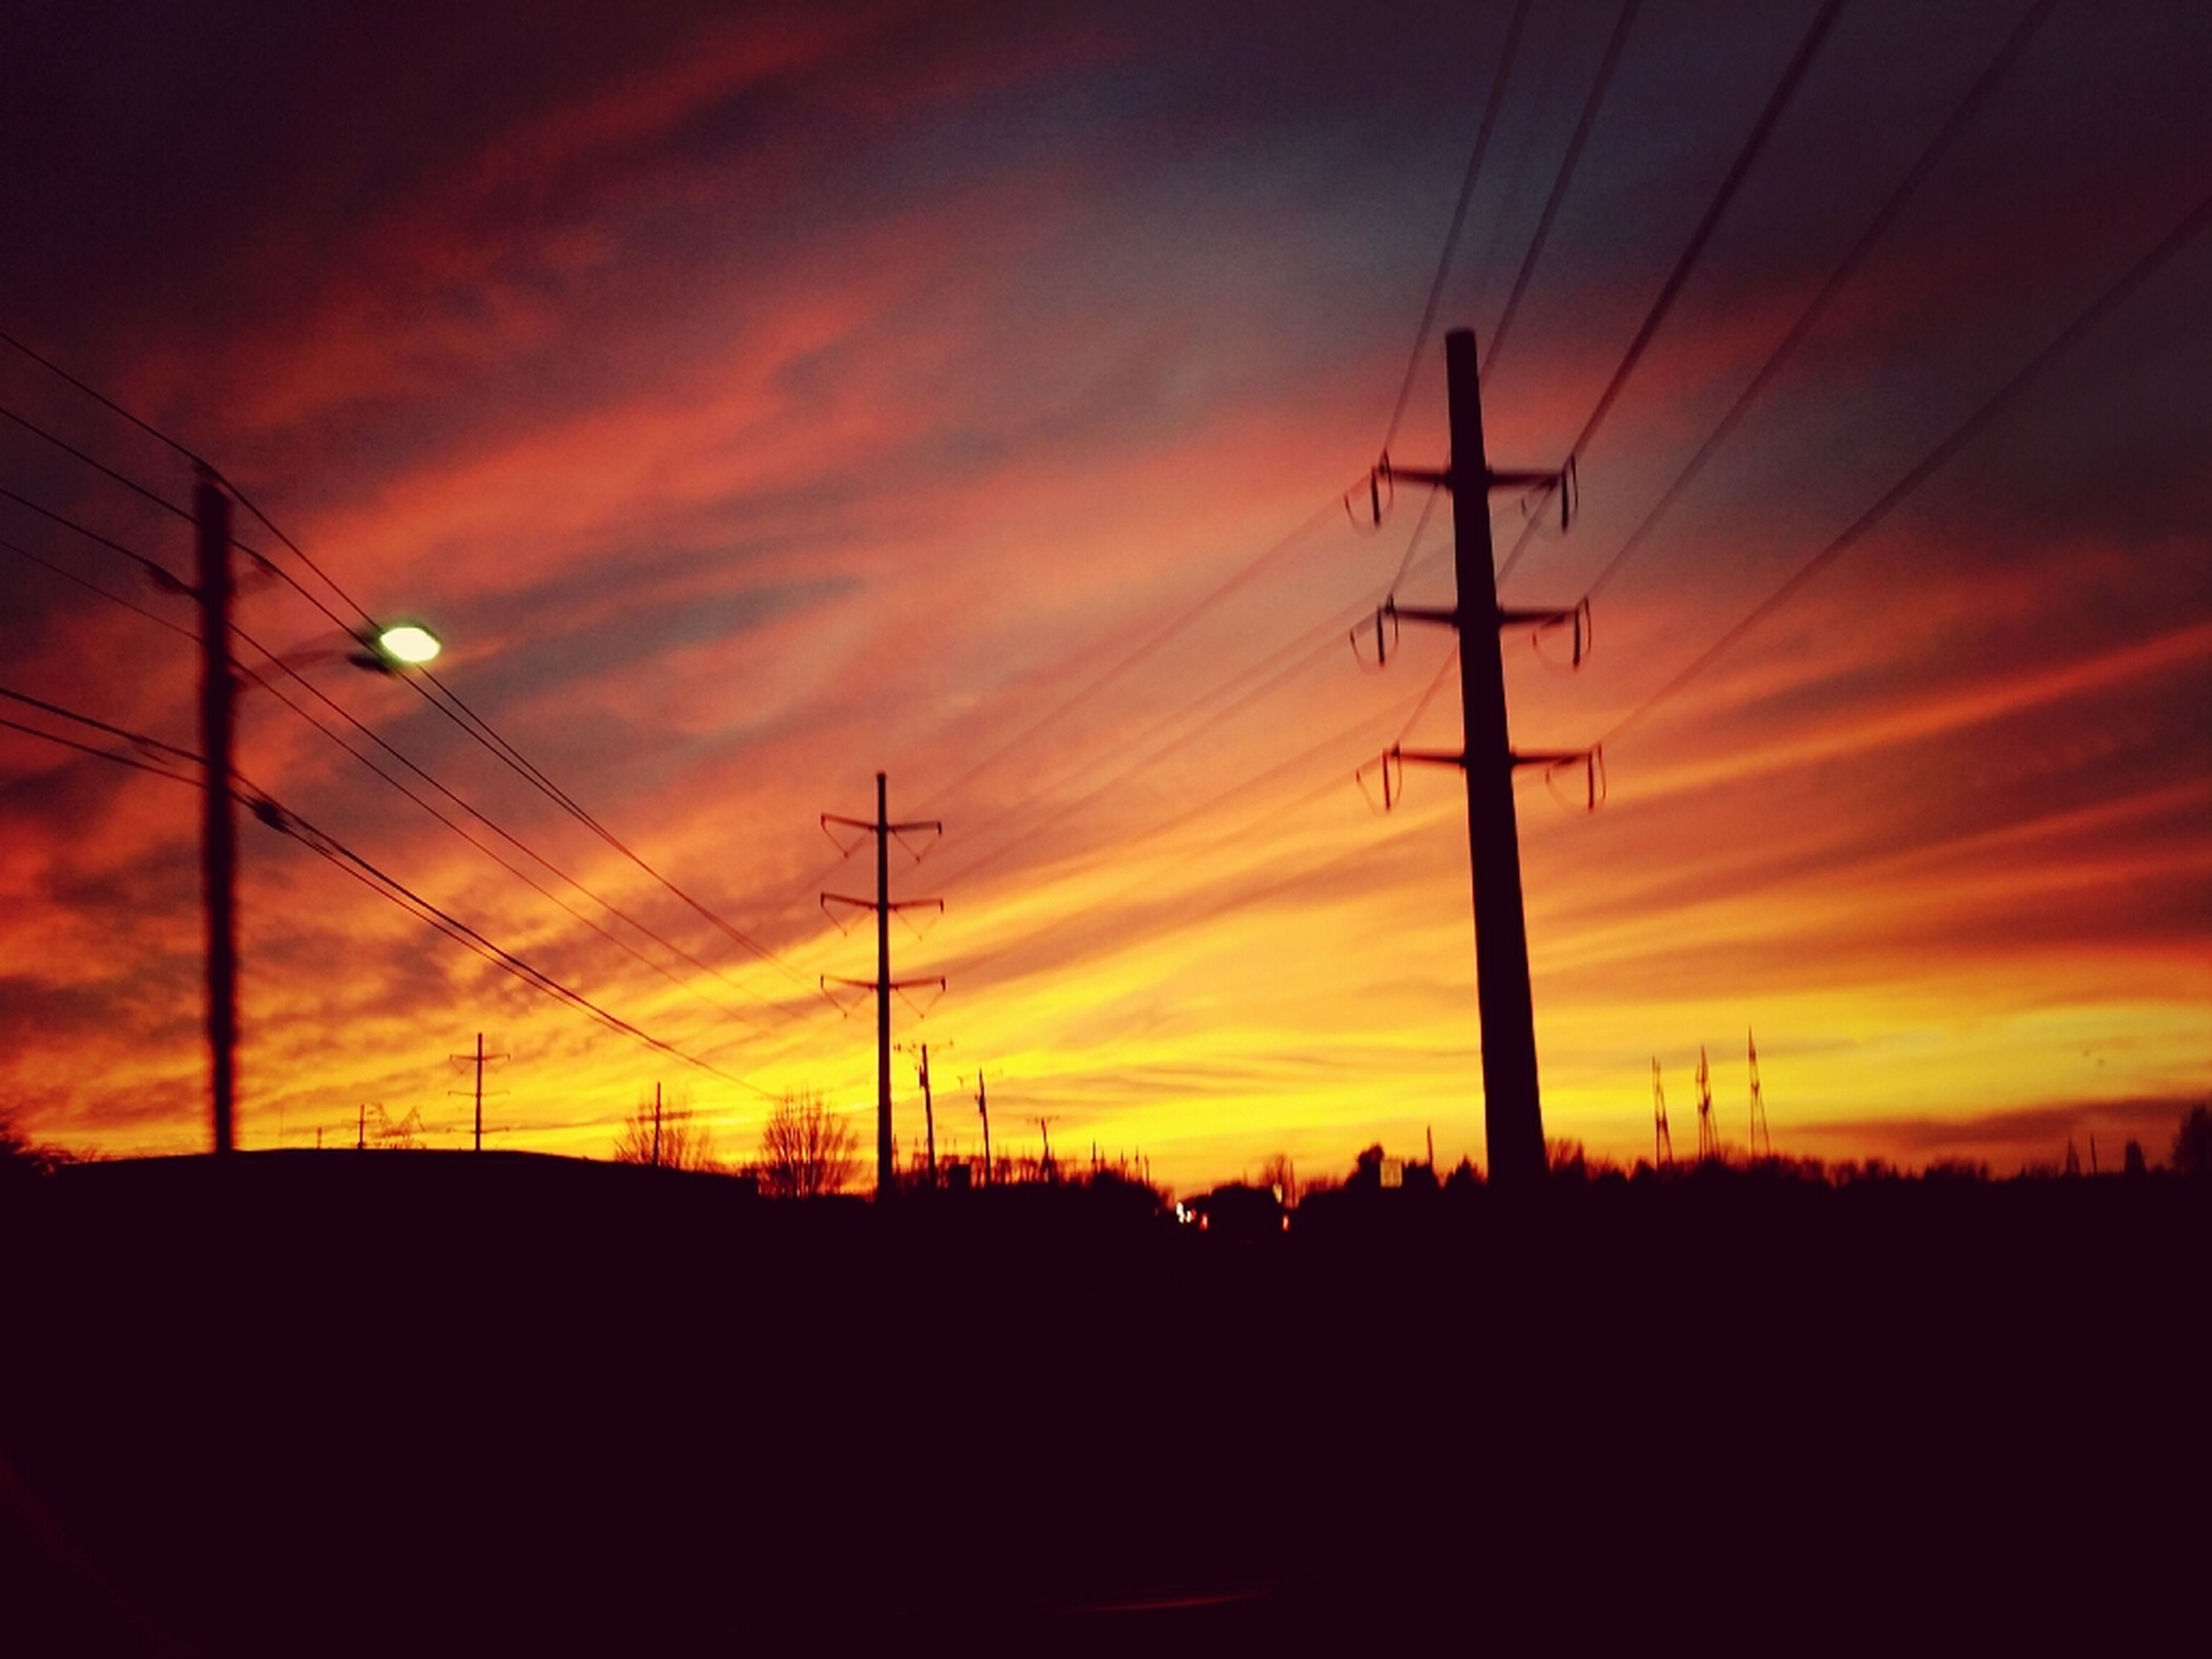 sunset, silhouette, orange color, sky, electricity pylon, power line, scenics, electricity, beauty in nature, tranquility, power supply, tranquil scene, cloud - sky, connection, nature, dramatic sky, landscape, cable, idyllic, fuel and power generation